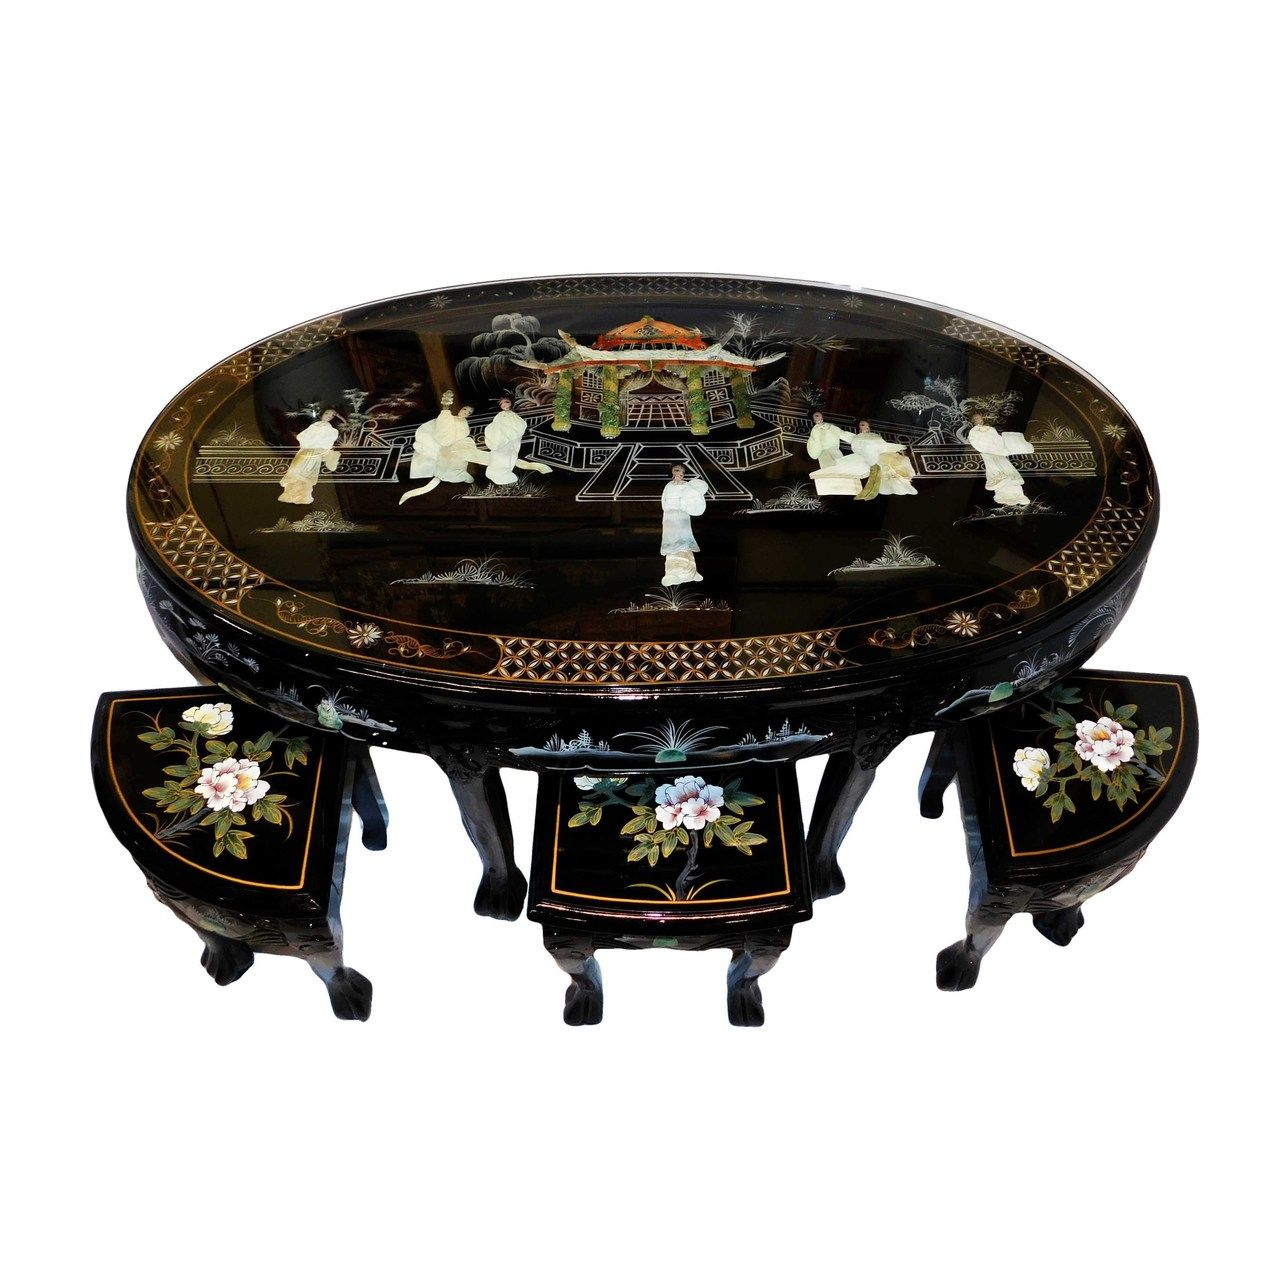 48 Shiny Black Lacquer Oriental Coffee Table Inlaid Pearl With